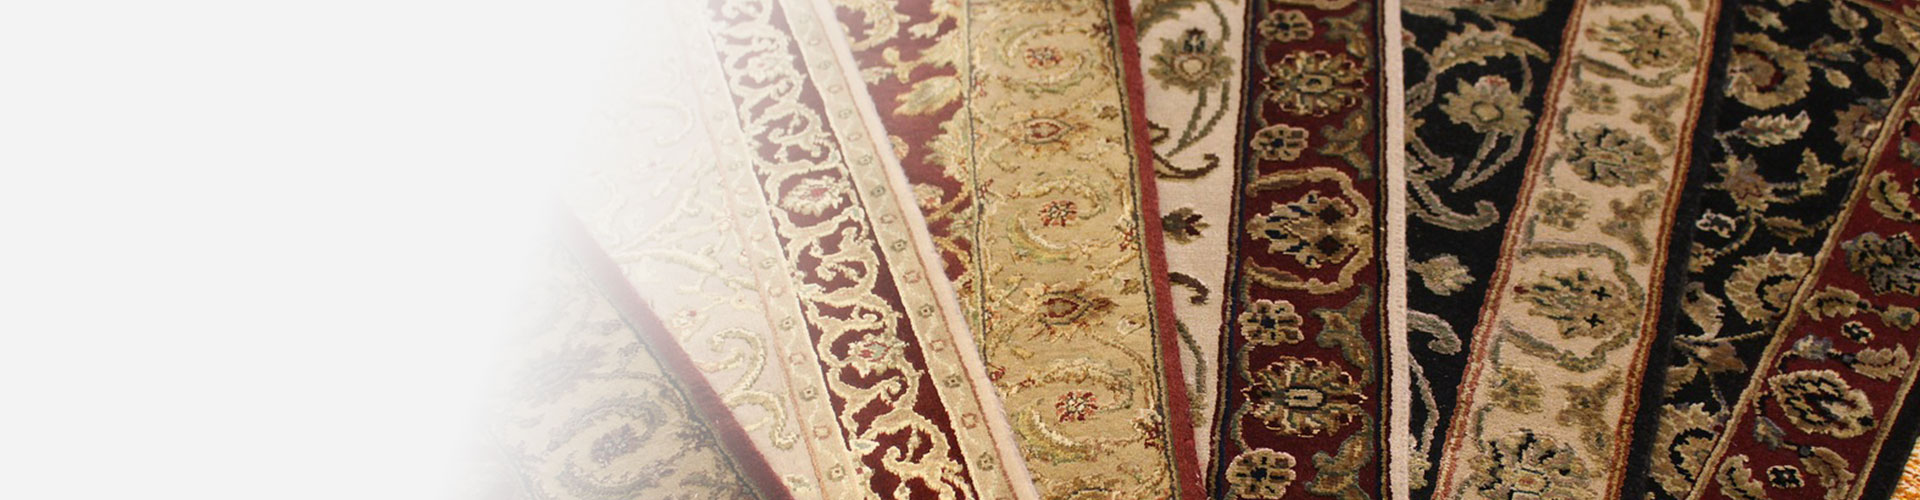 Carpet And Rug Spot Bleaching Oriental Area Rug Cleaning